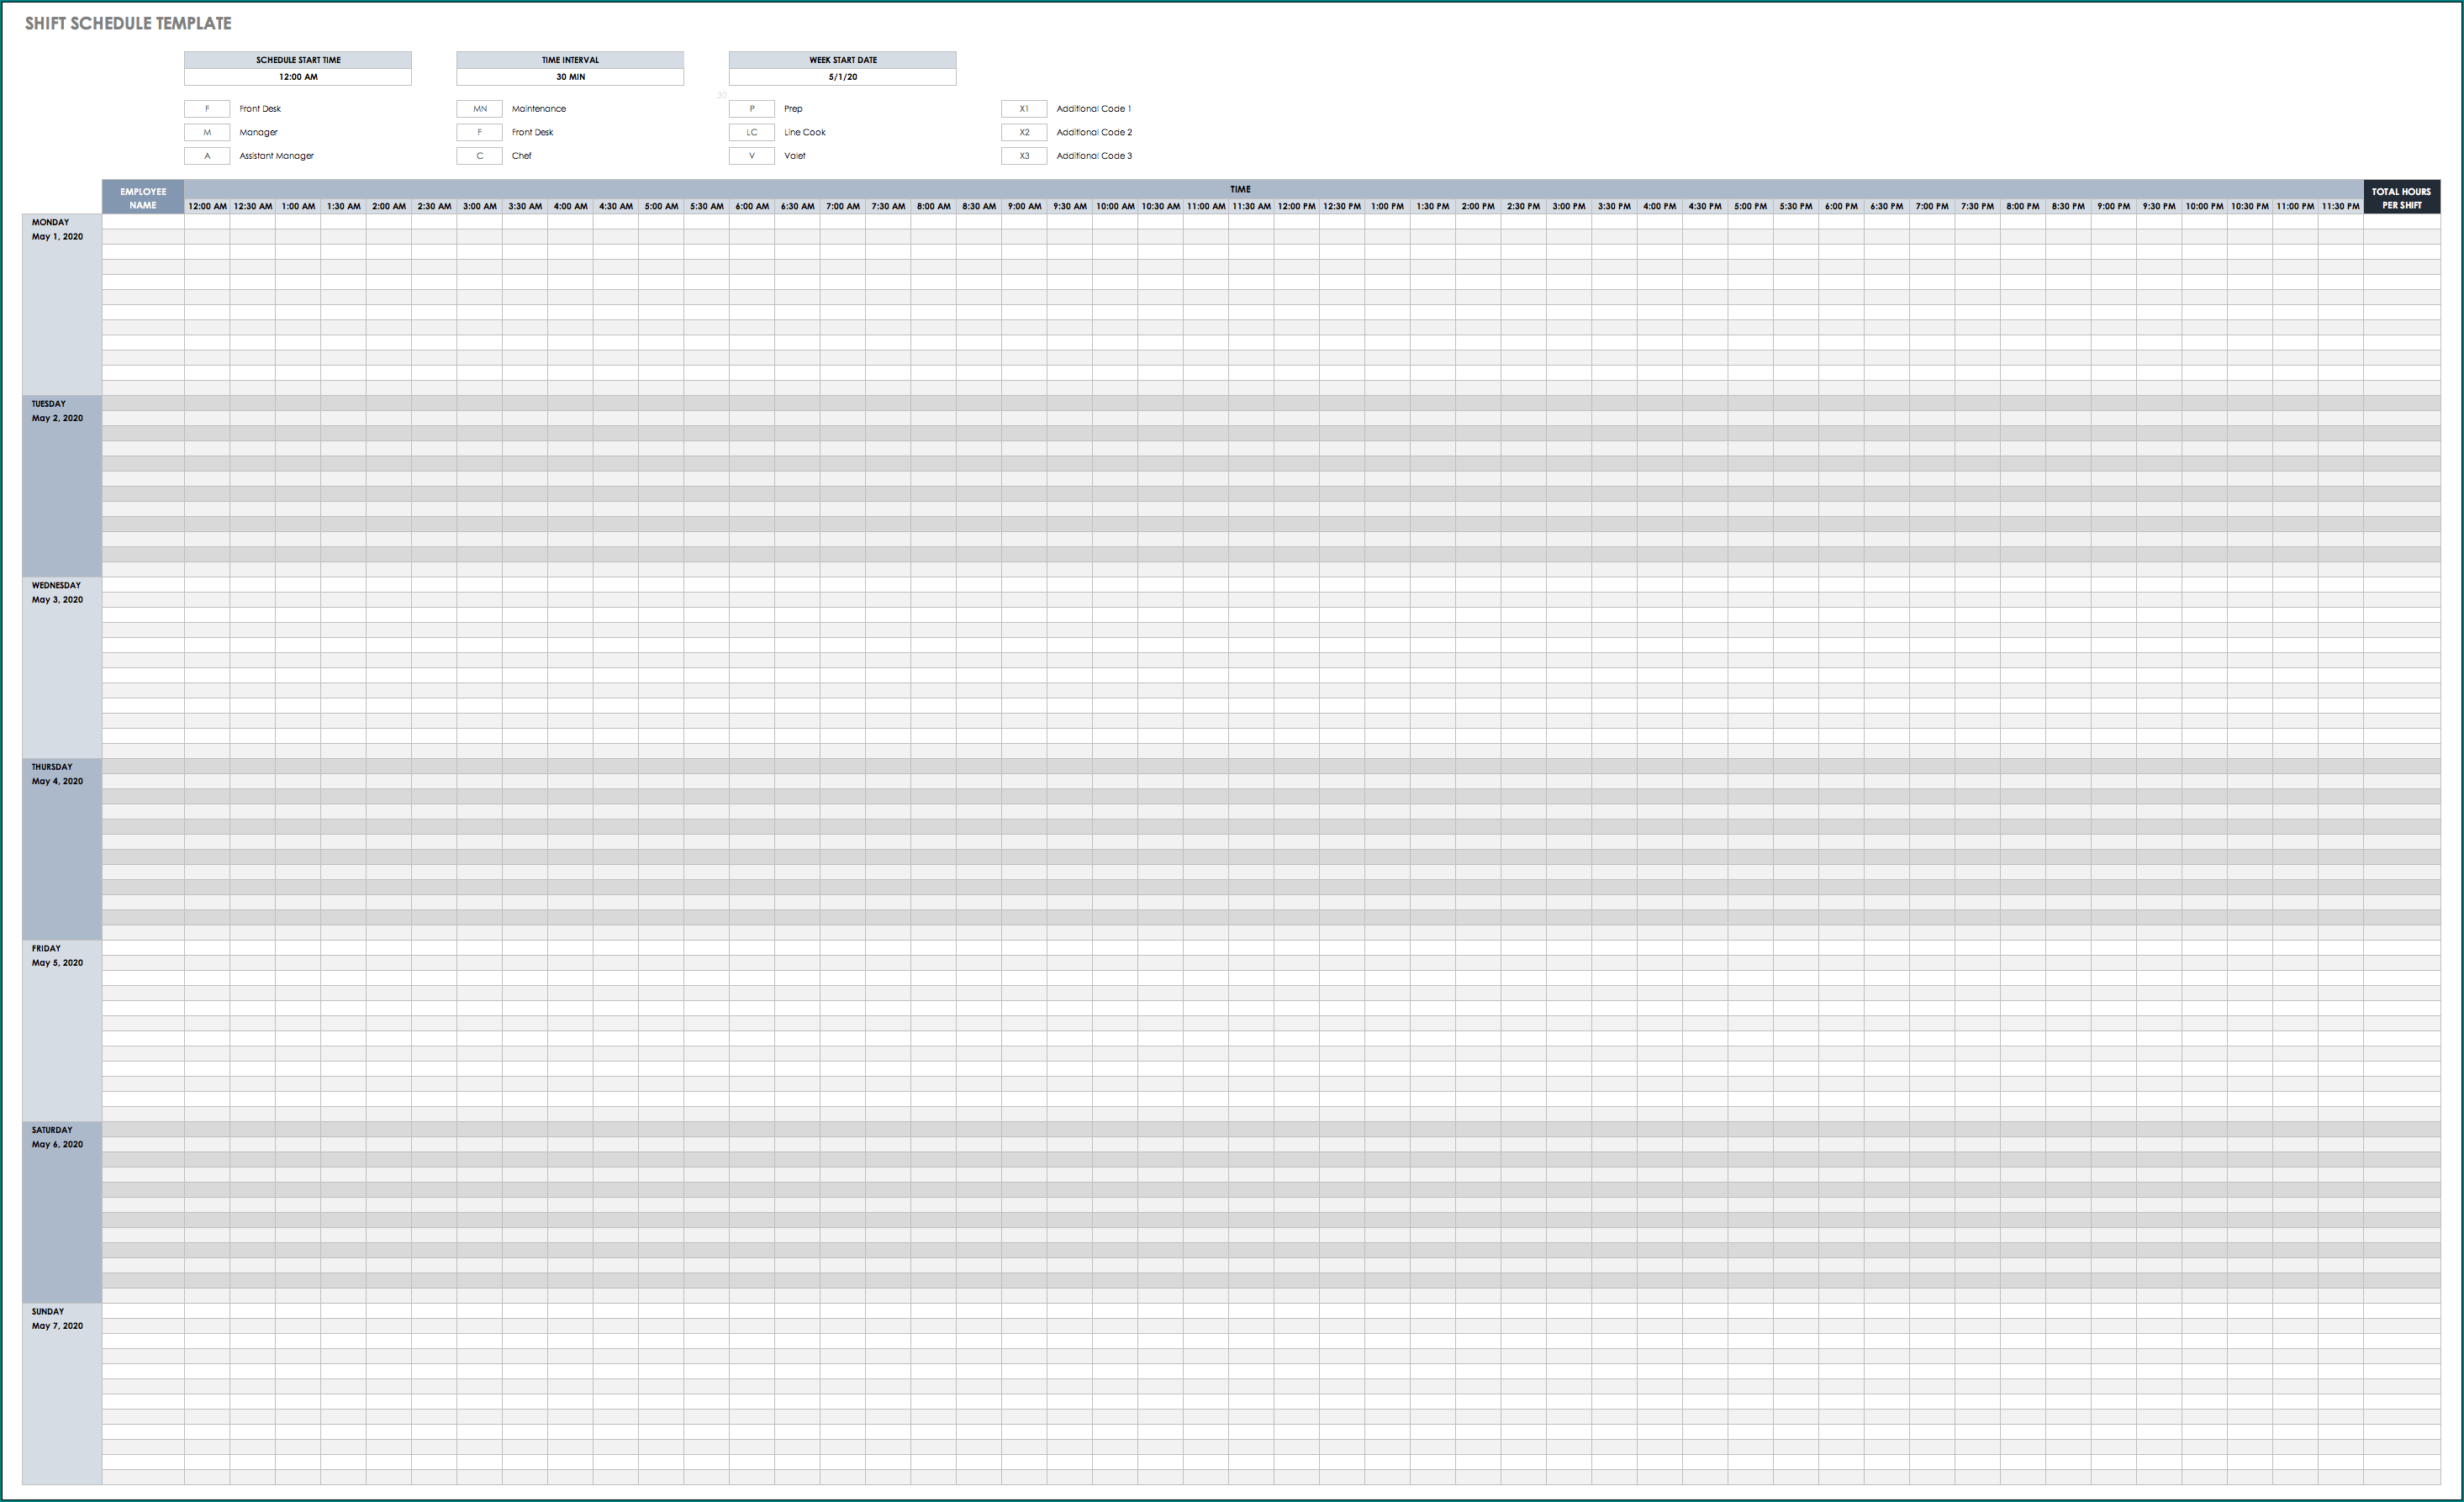 Sample of Employee Shift Schedule Template